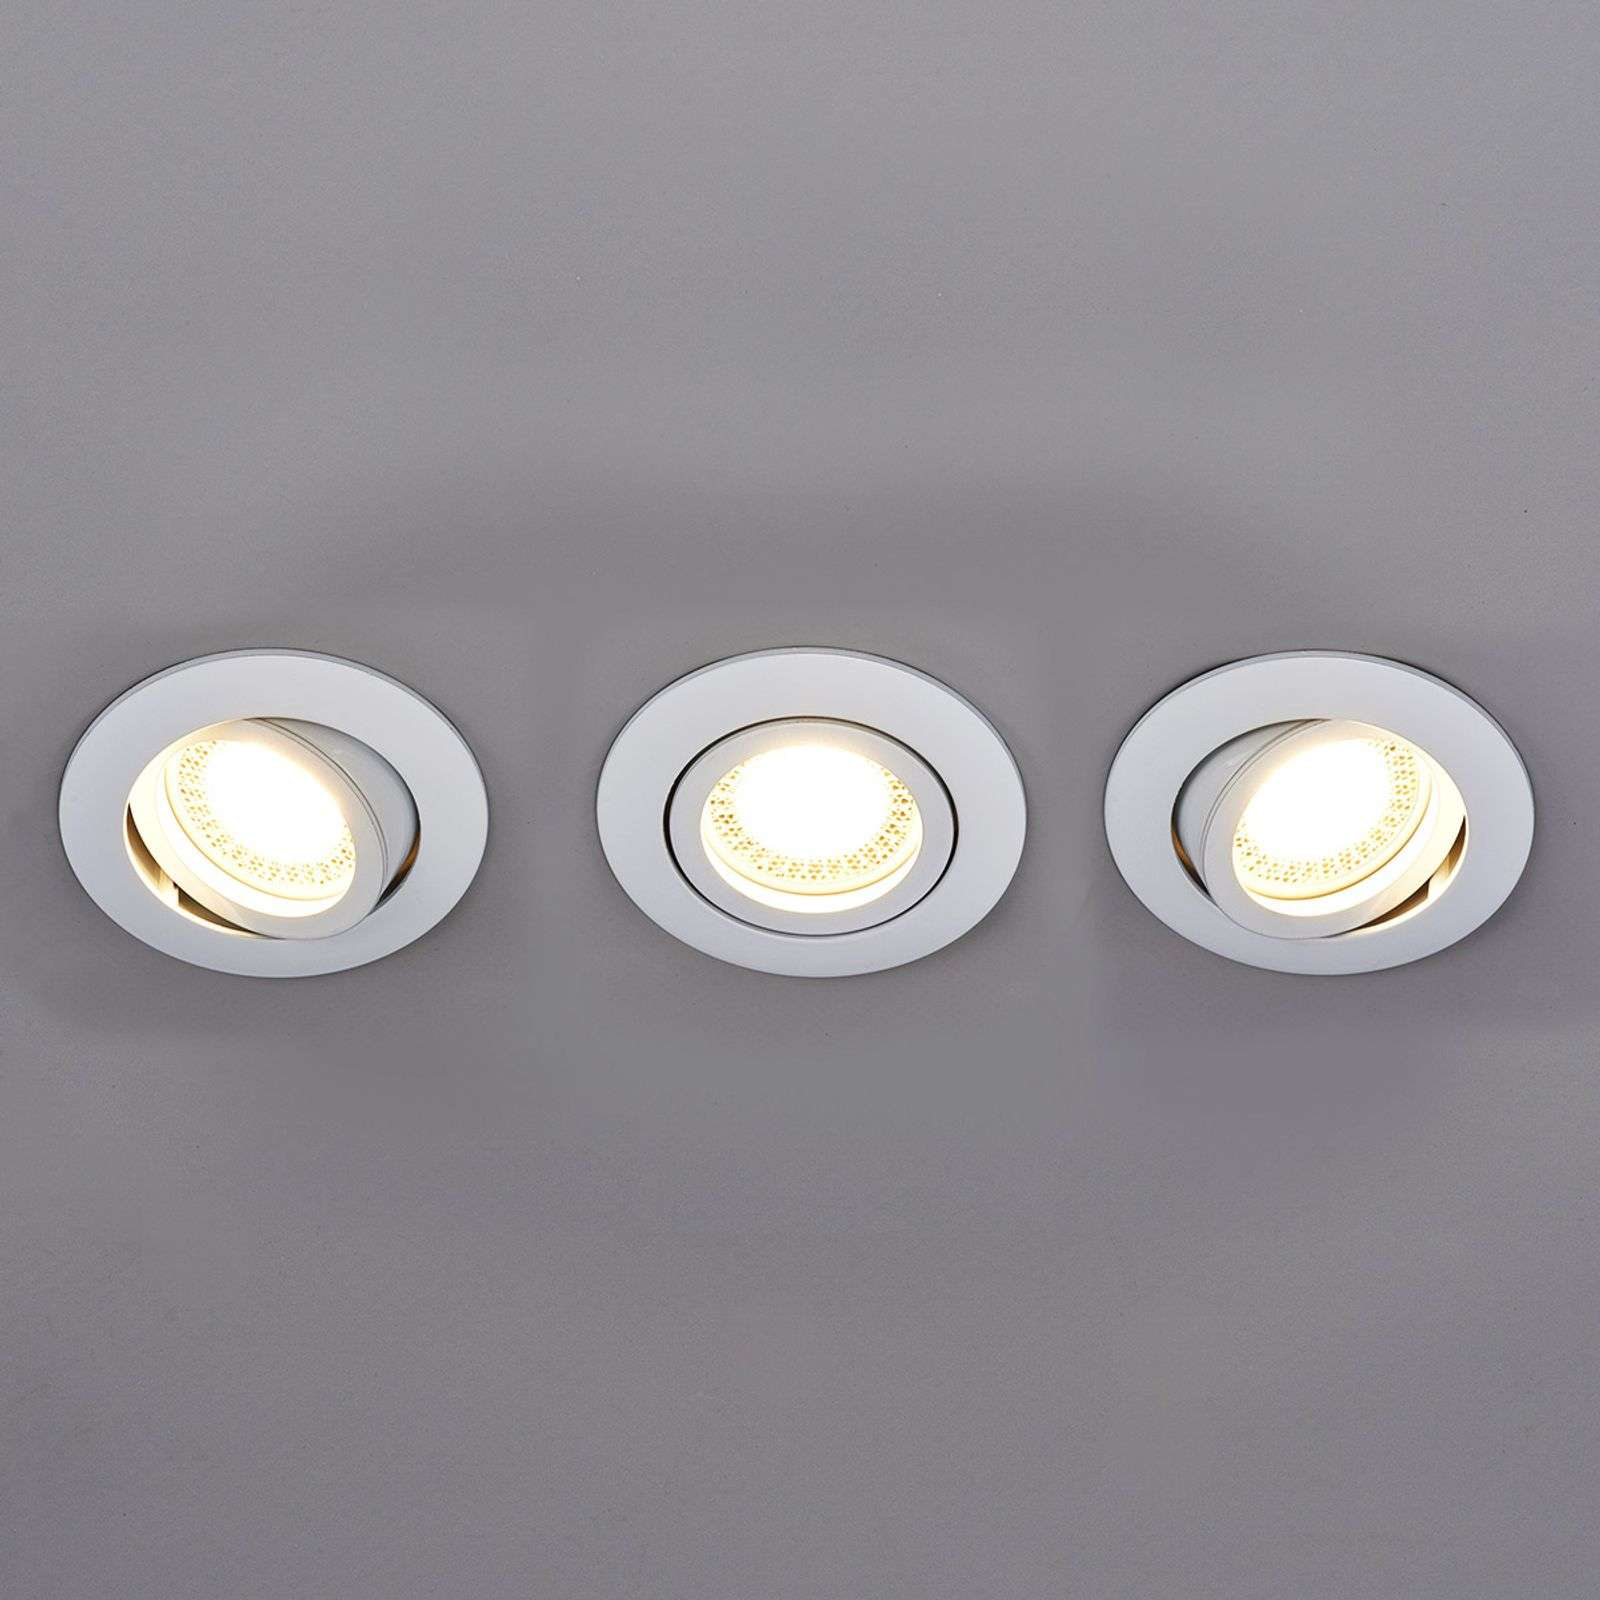 Set de 3 spots encastrés LED Lisara ronds blancs